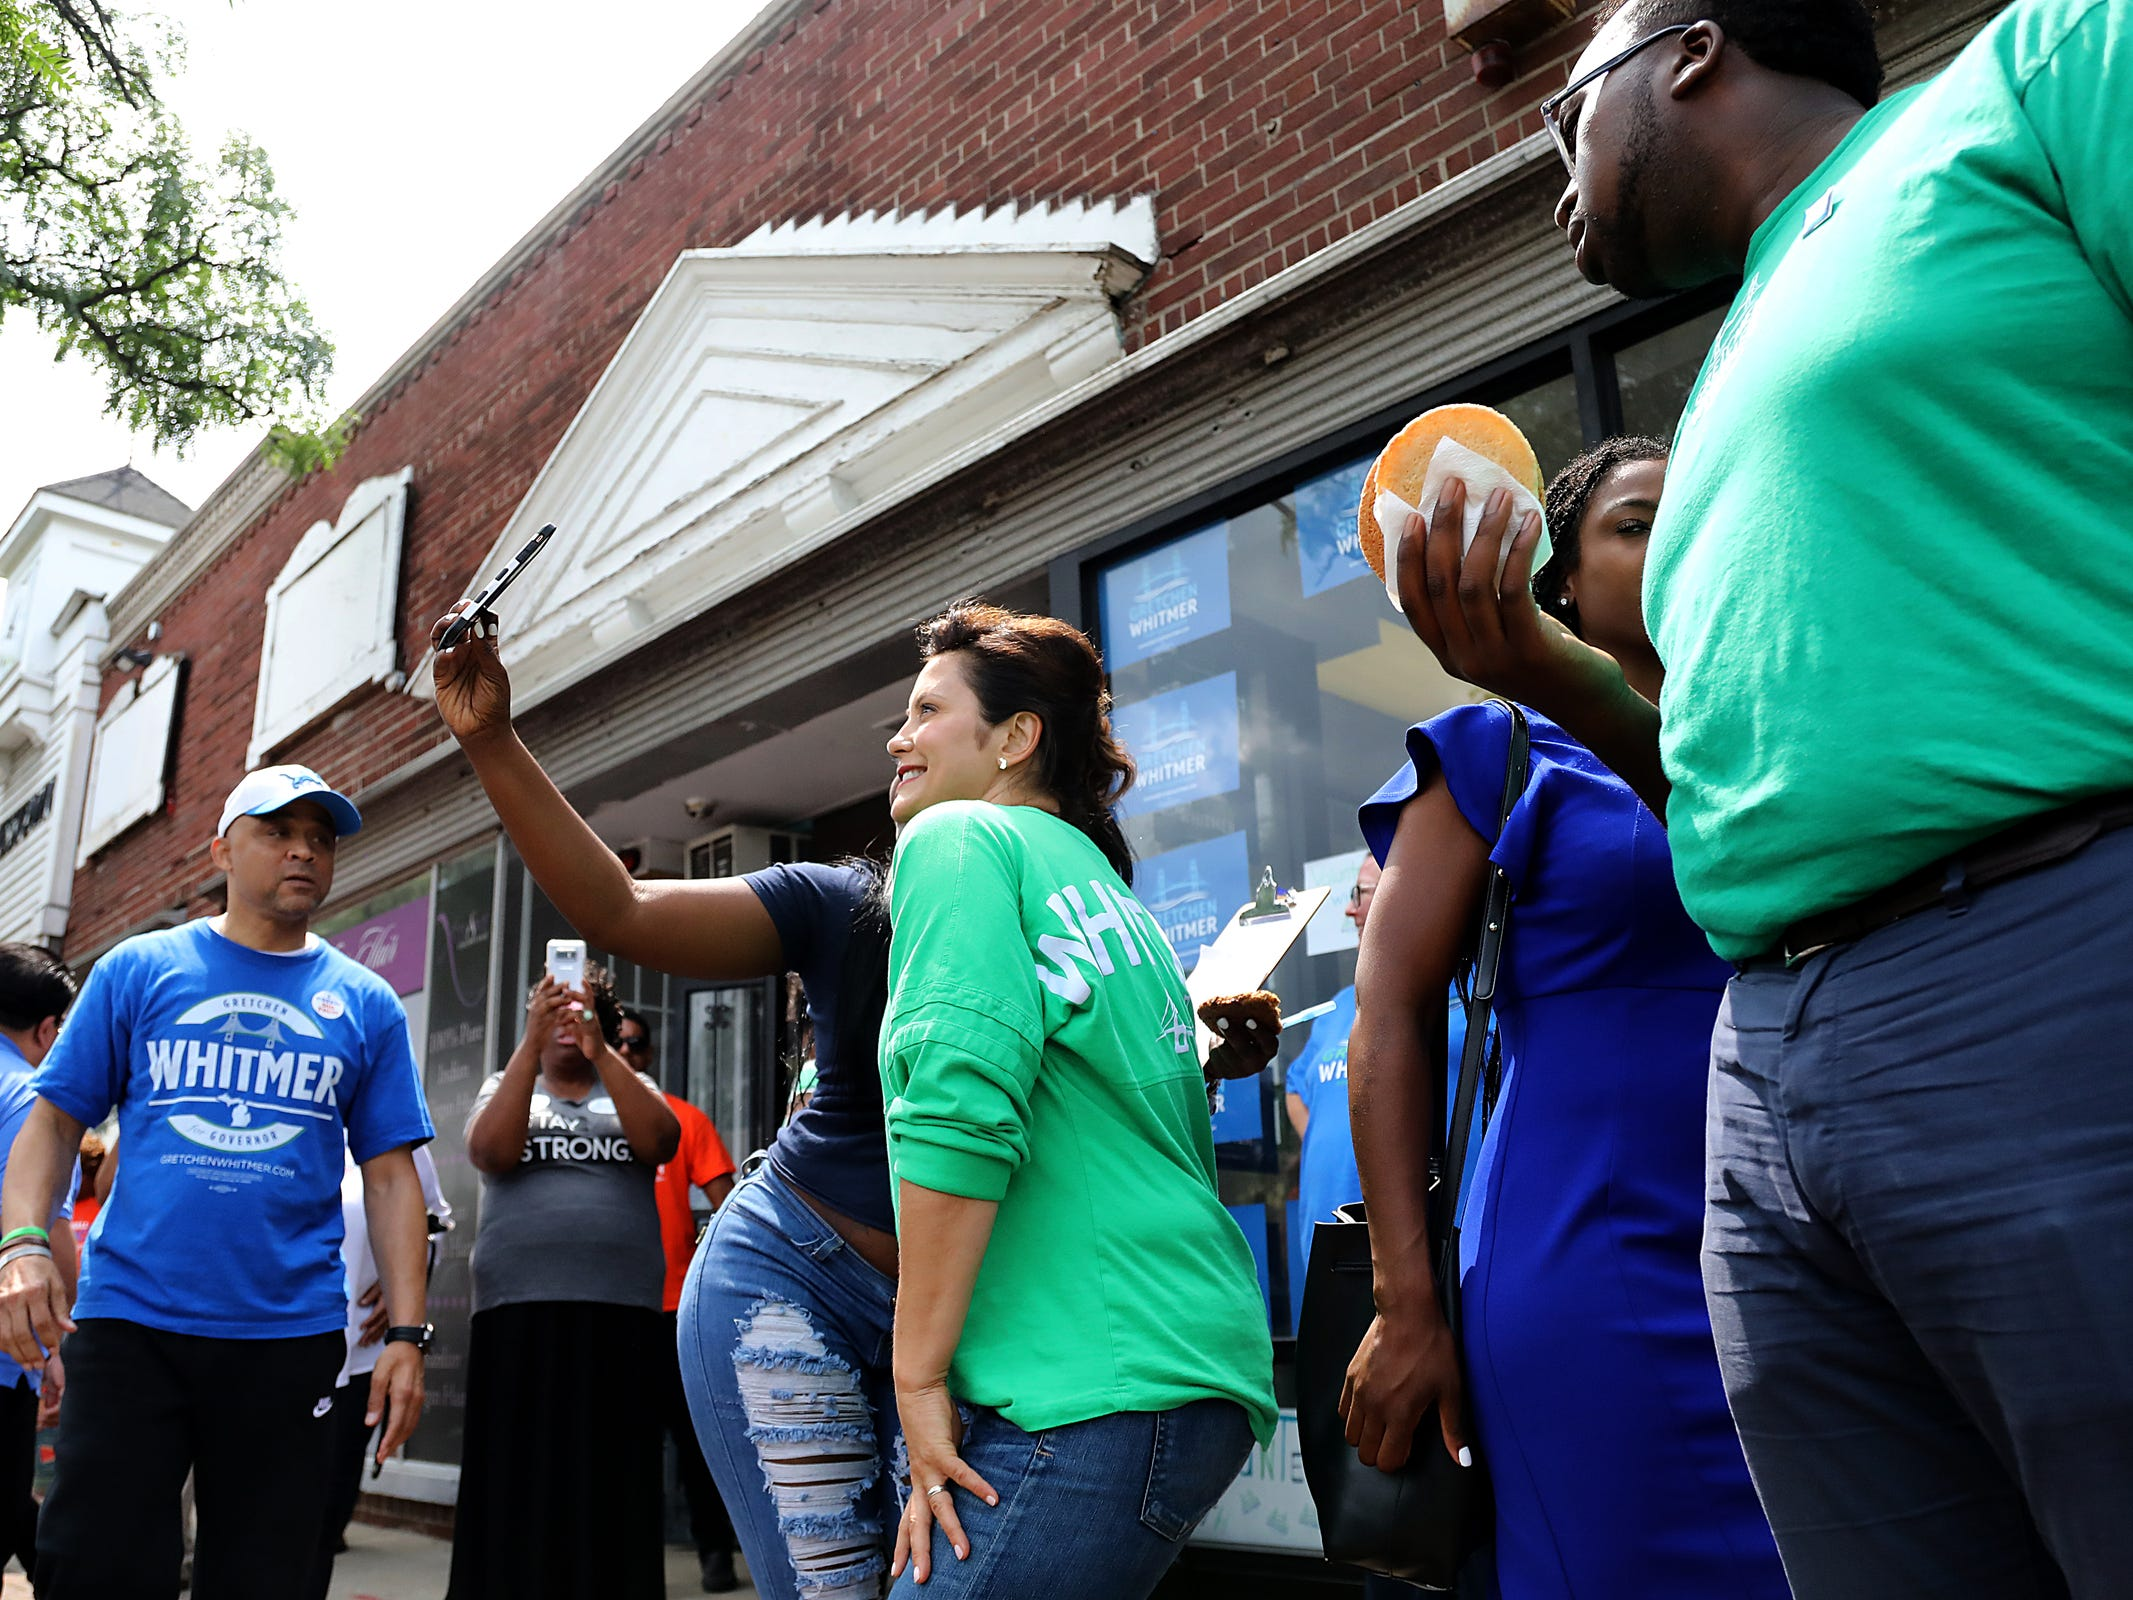 Gubernatorial Democratic Candidate Gretchen Whitmer takes photos with supporters outside her campaign headquarters on Livernois Avenue of Fashion on Michigan Primary day on Tuesday, Aug. 7, 2018.